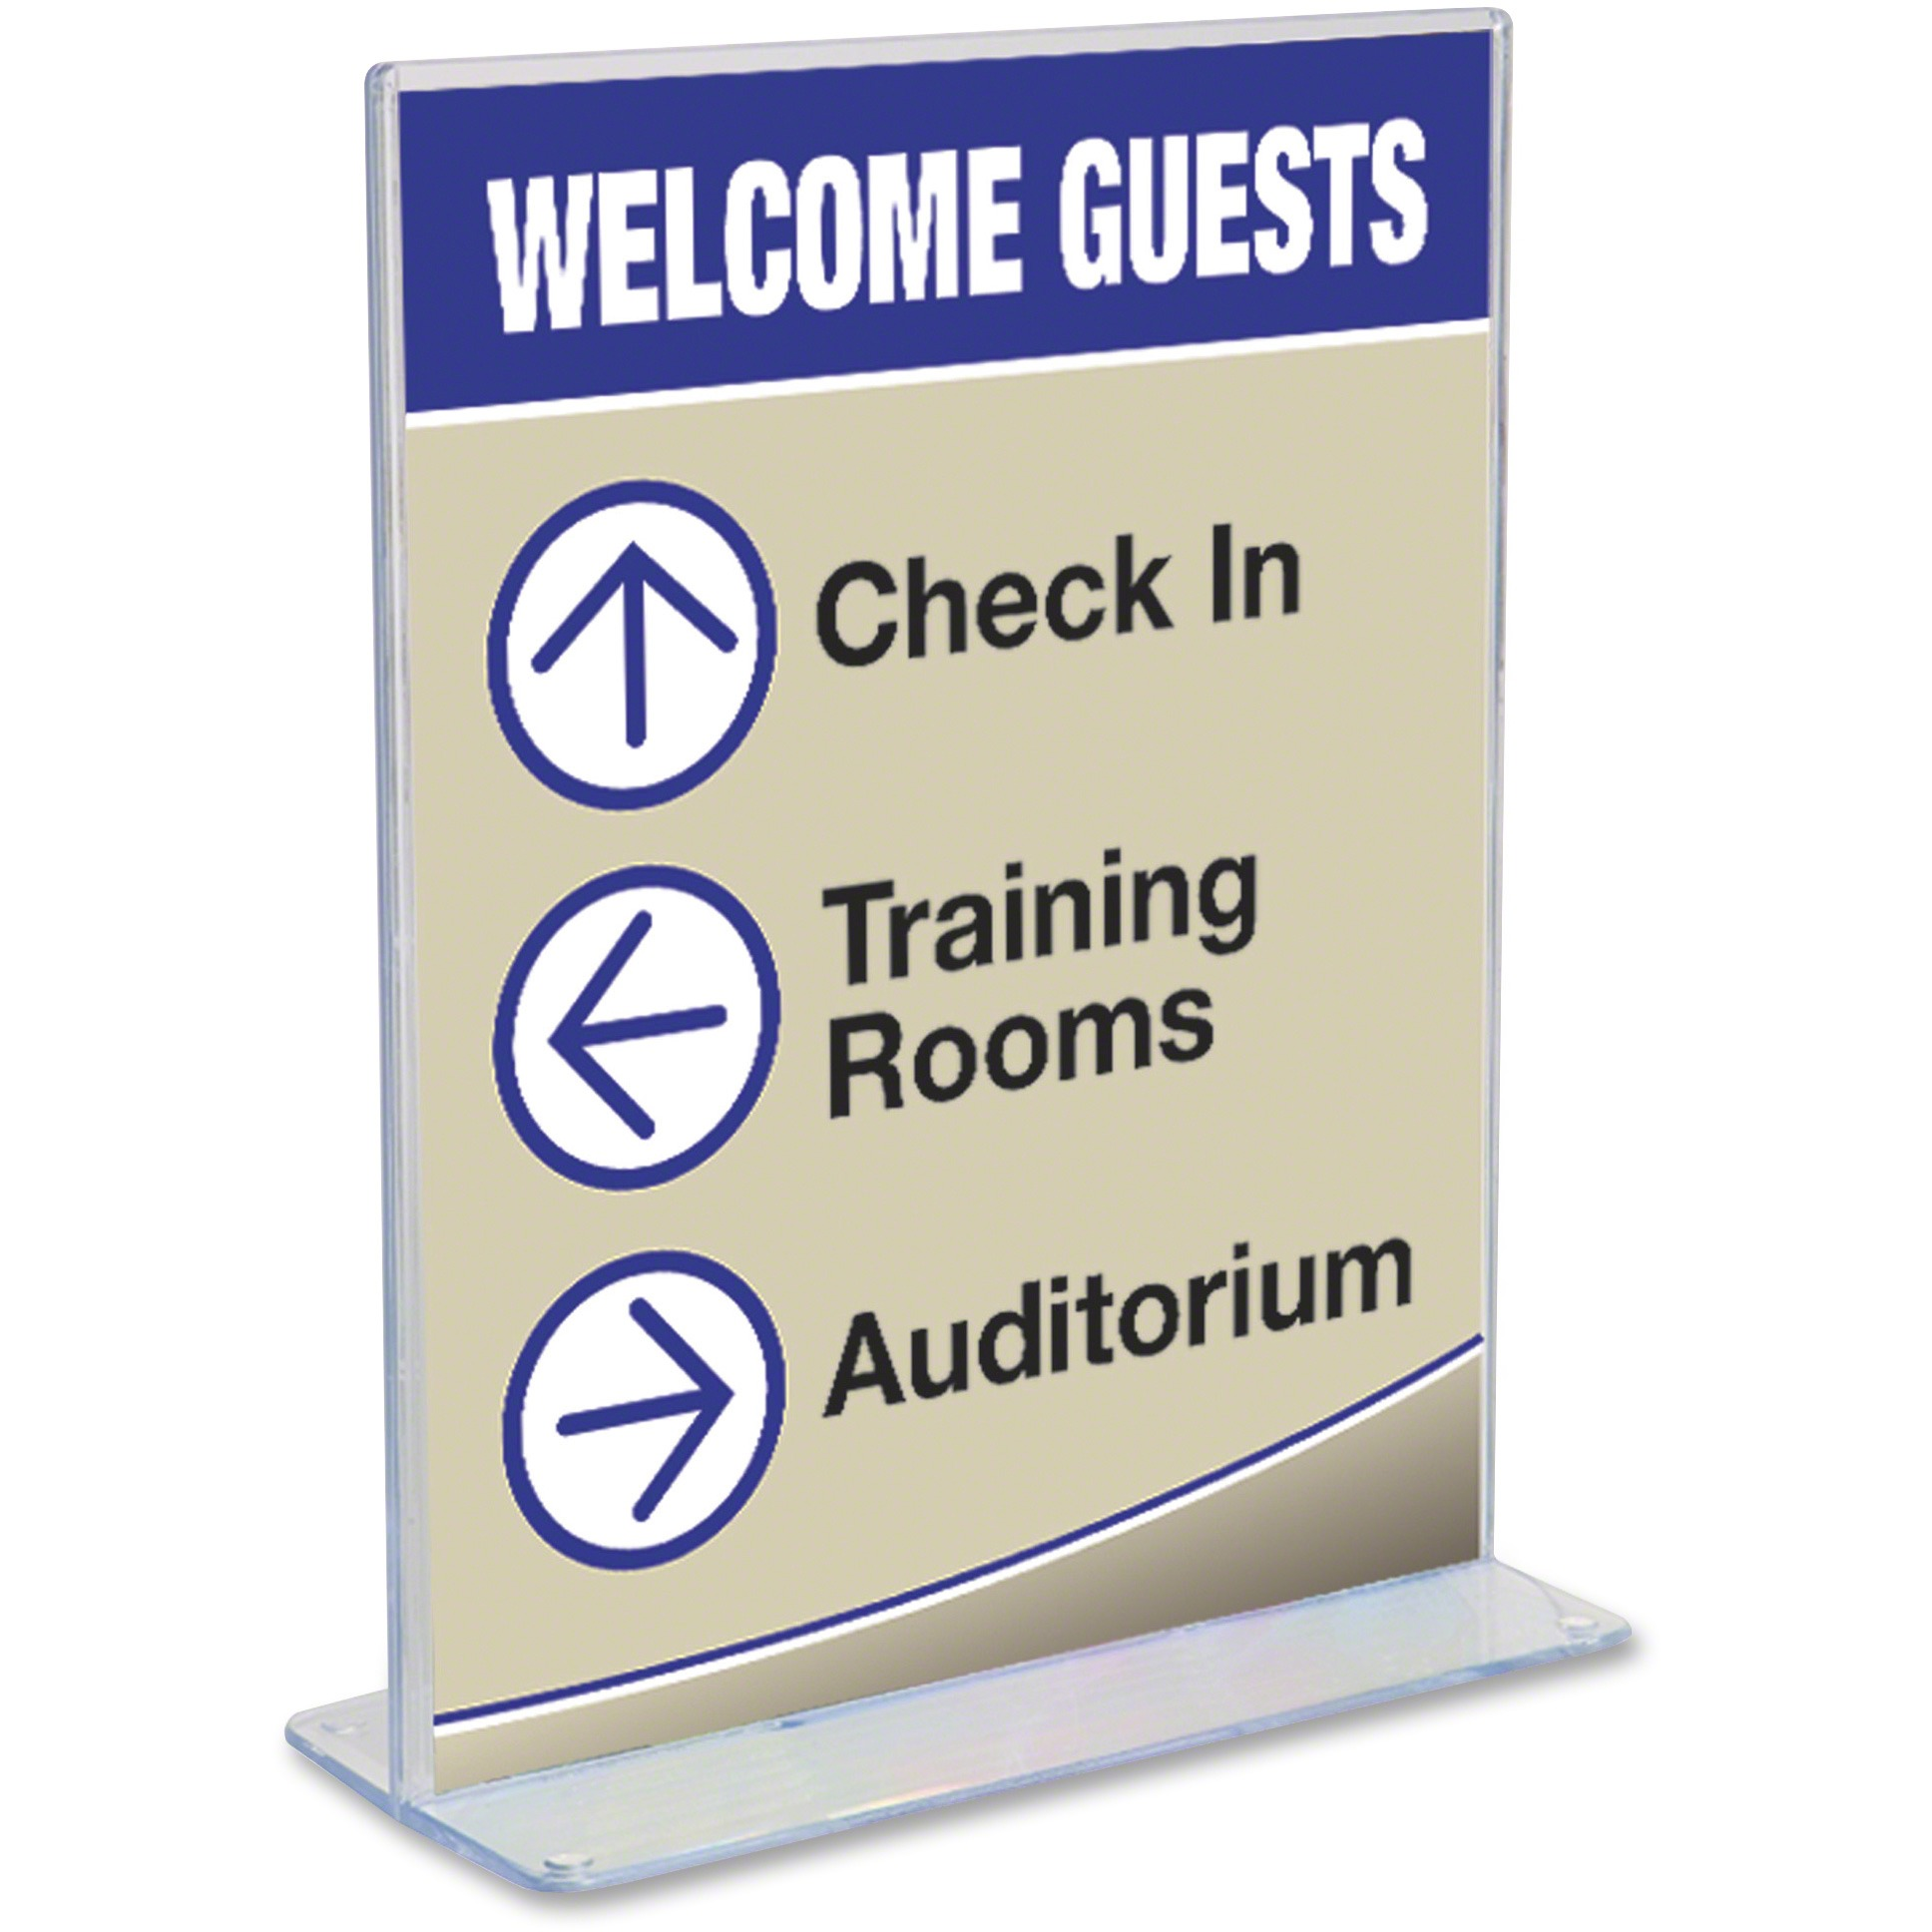 deflecto Superior Image Stand-Up Double-Sided Sign Holder, Plastic,8 1/2x11 Insert, Clear